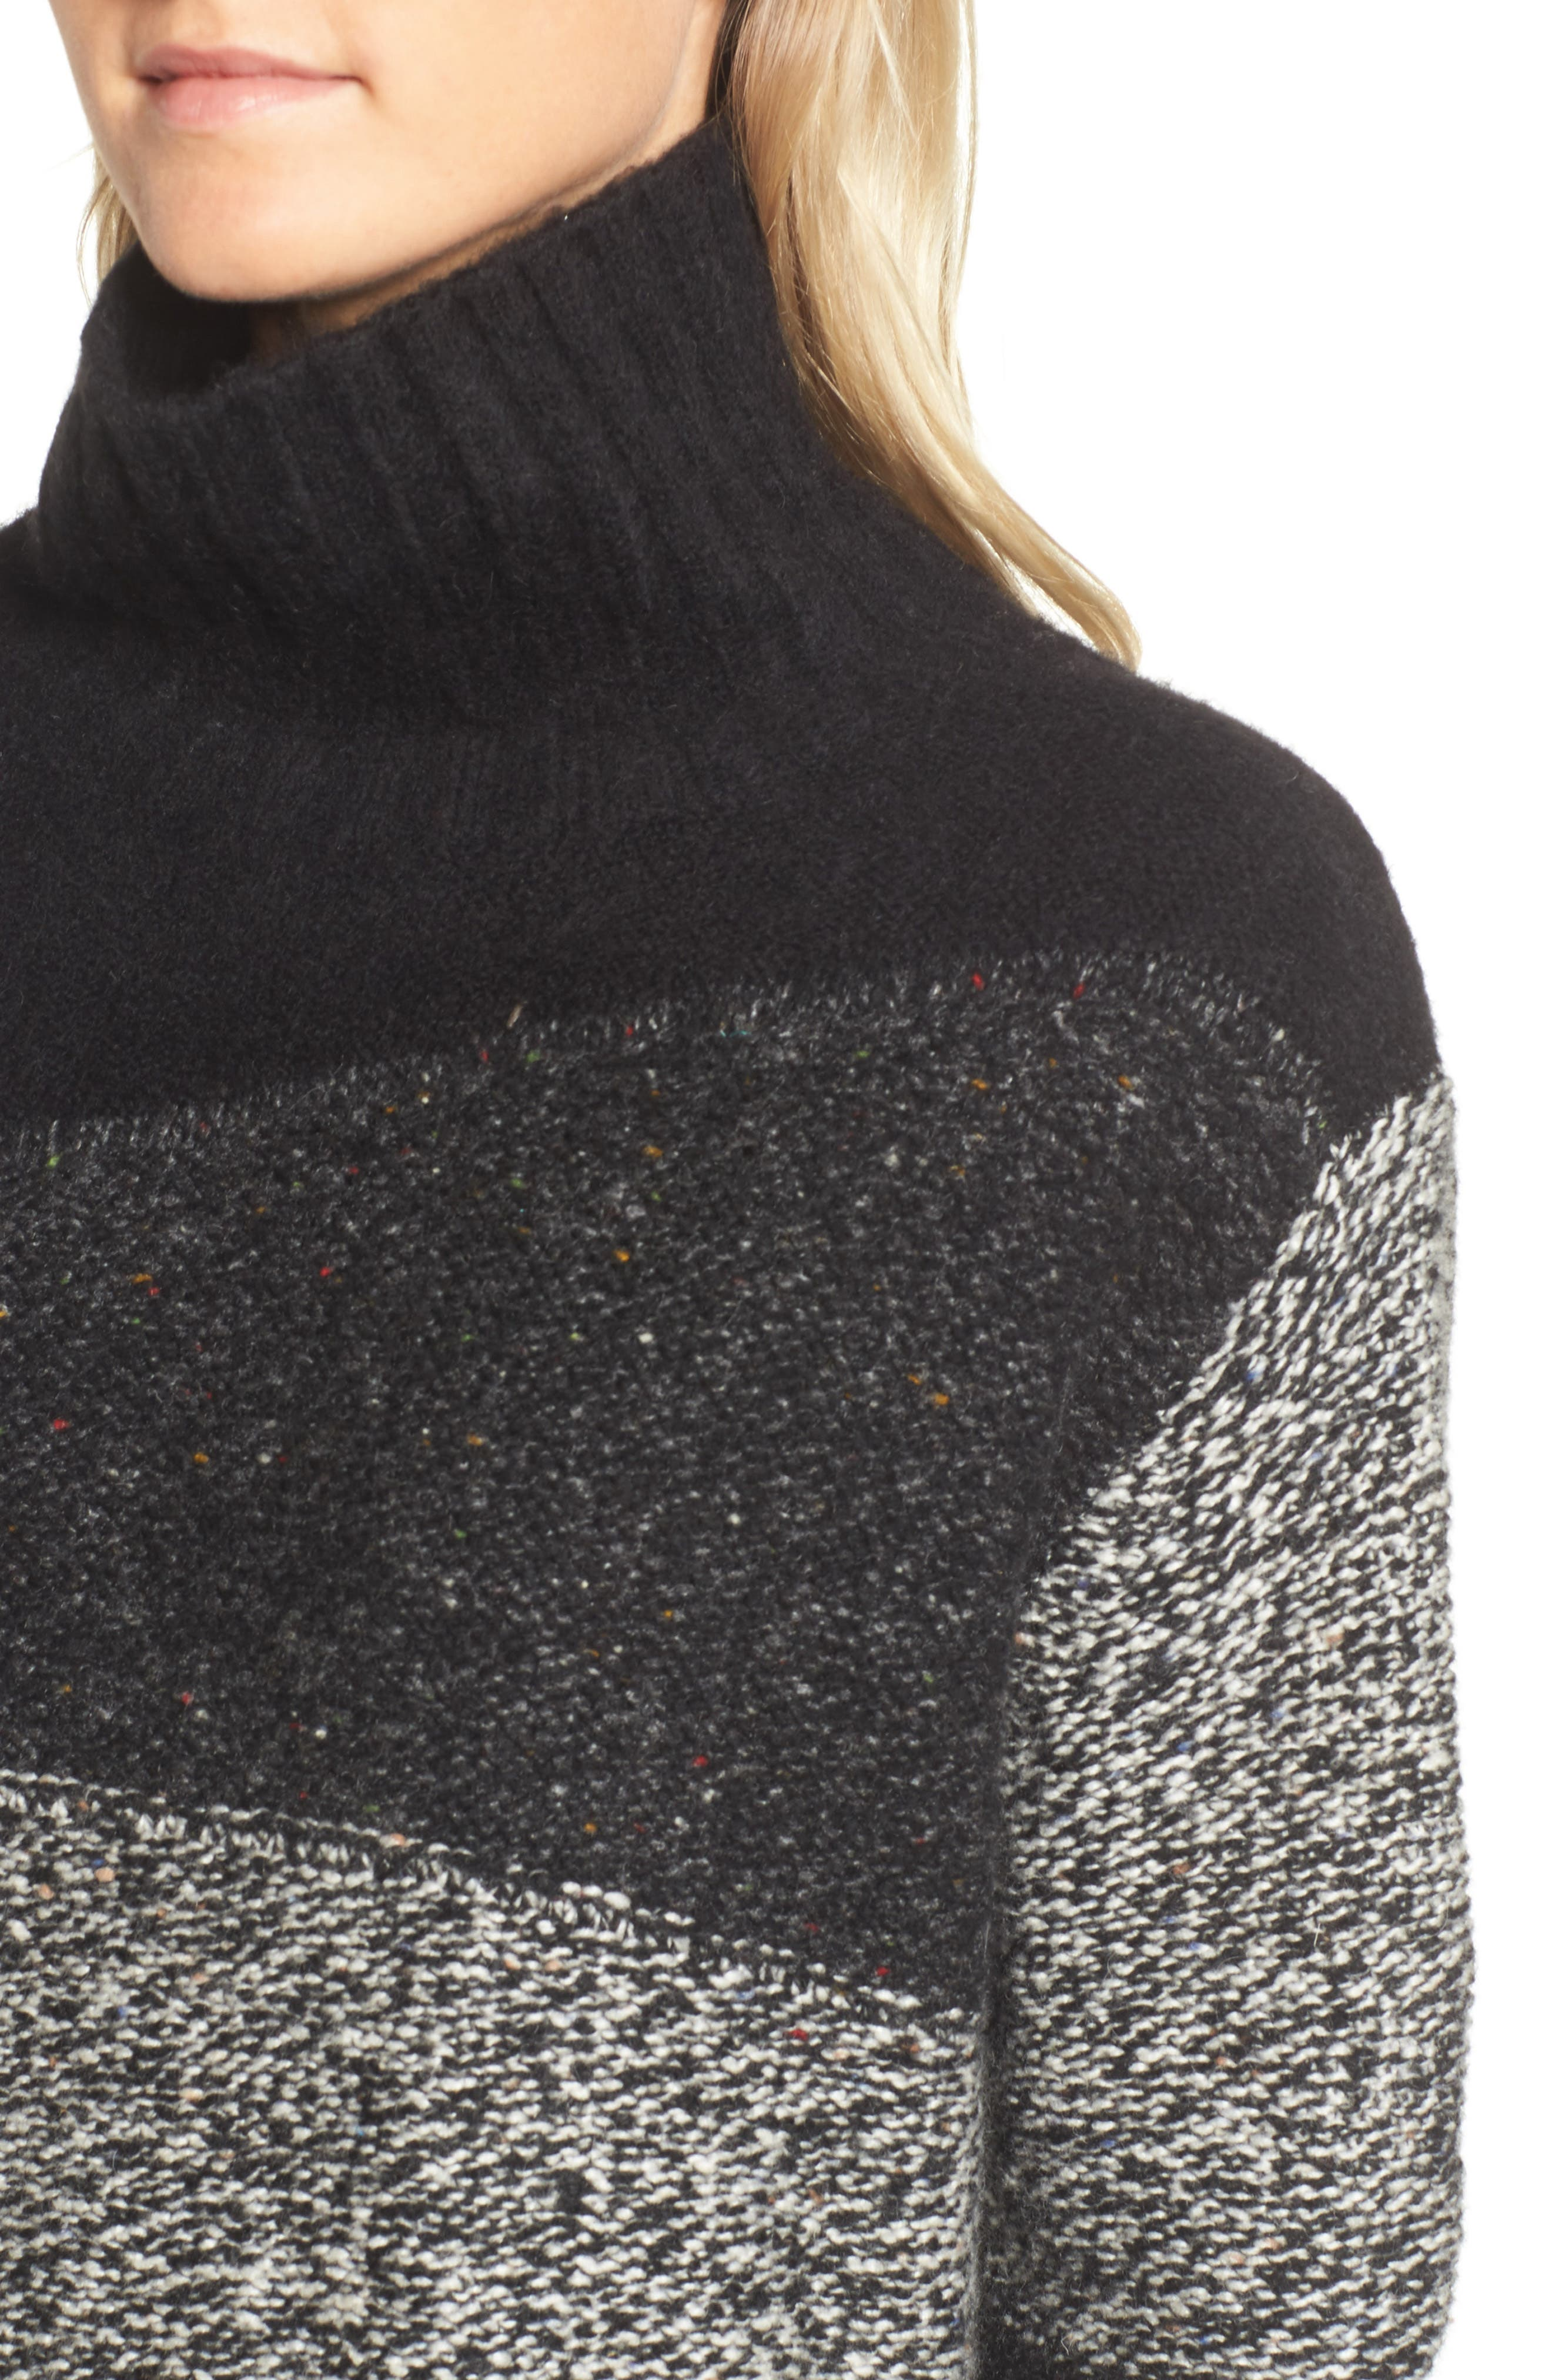 Anna Patchwork Turtleneck,                             Alternate thumbnail 4, color,                             006